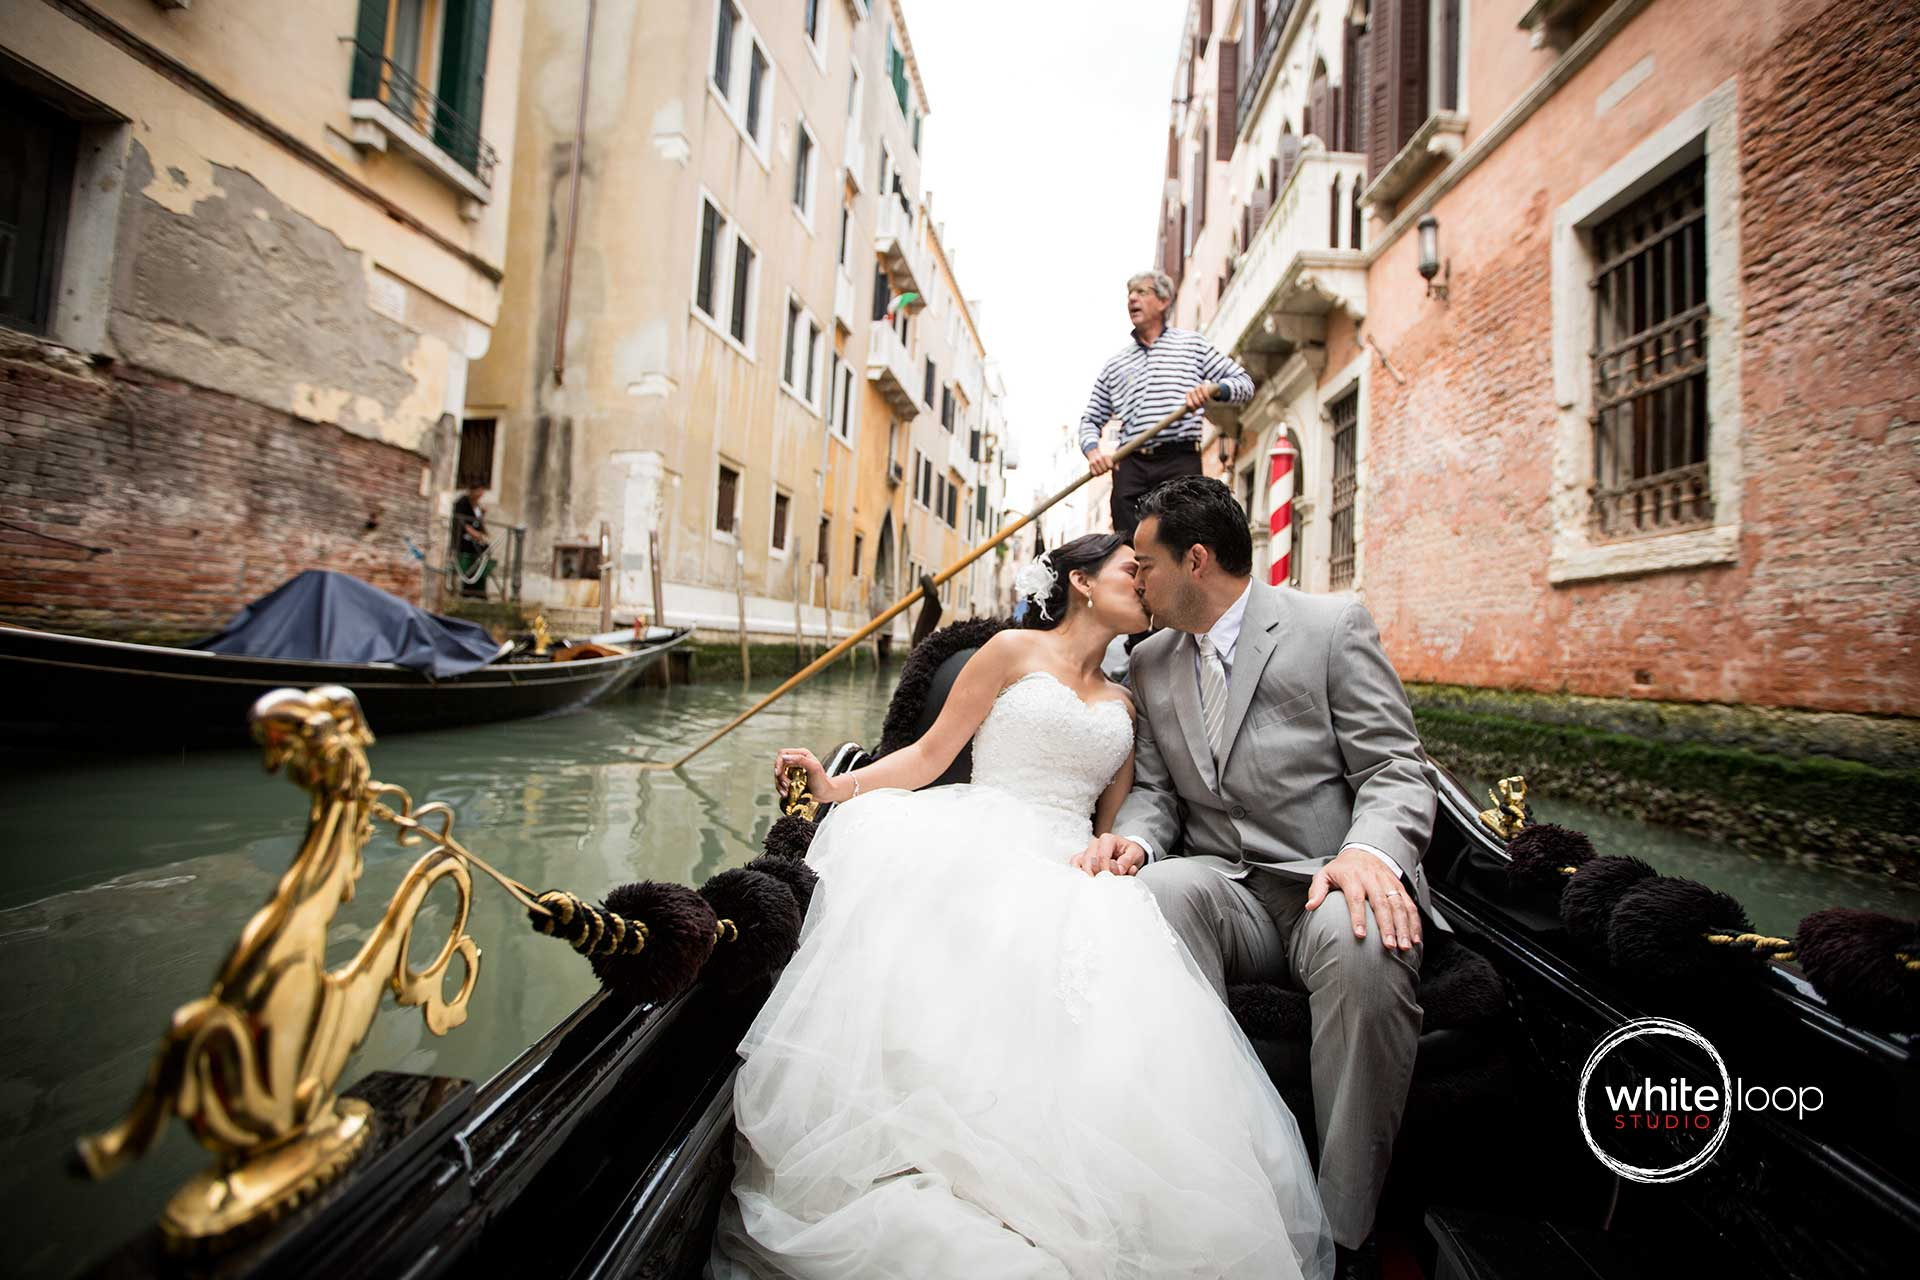 The Bride And Groom Are Kissing In A Traditional Venetian Gondola Meanwhile They Crossing